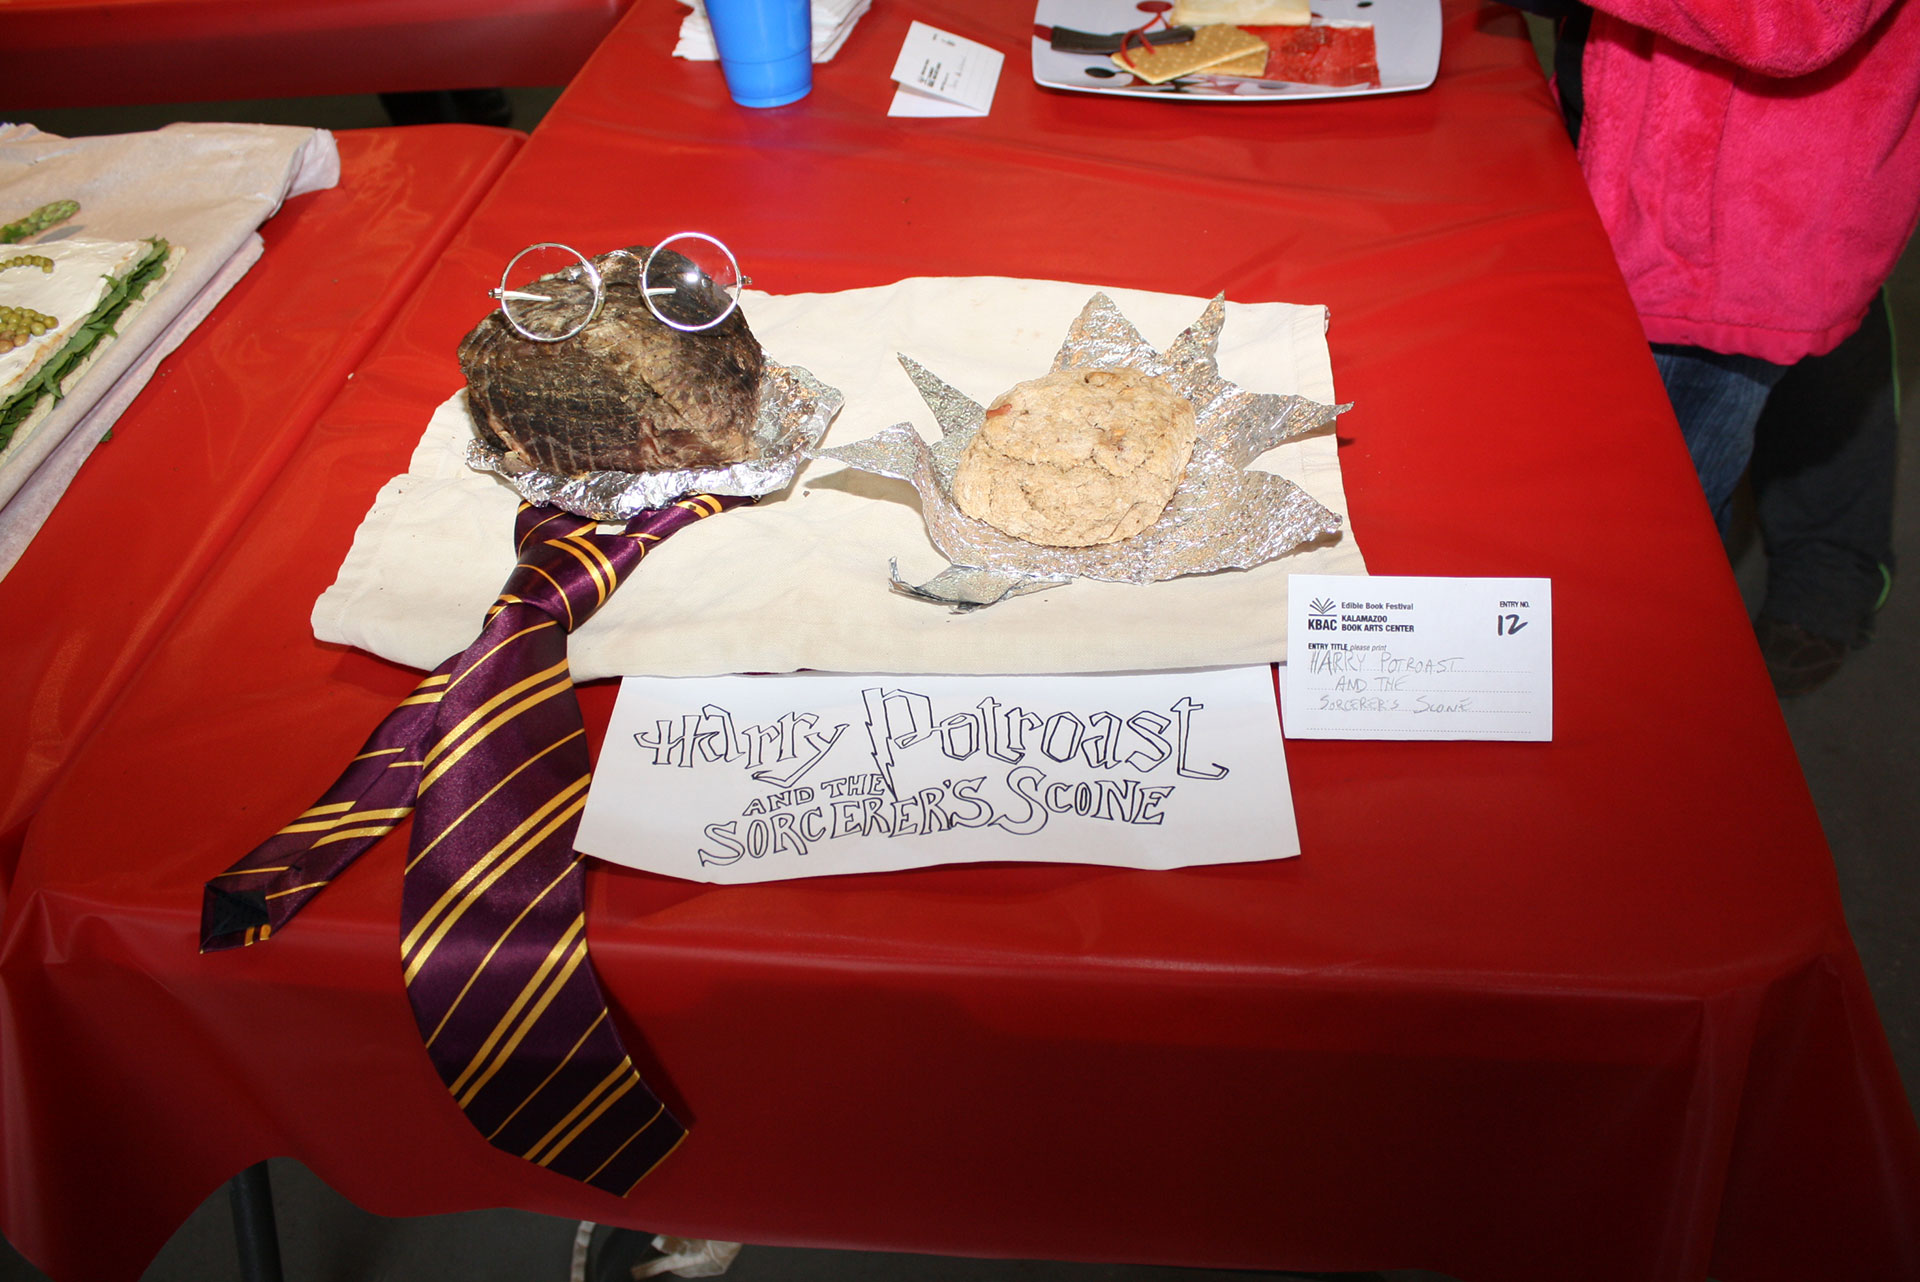 Harry Pot Roast and the Sorcerers Scone by Ben Jones.